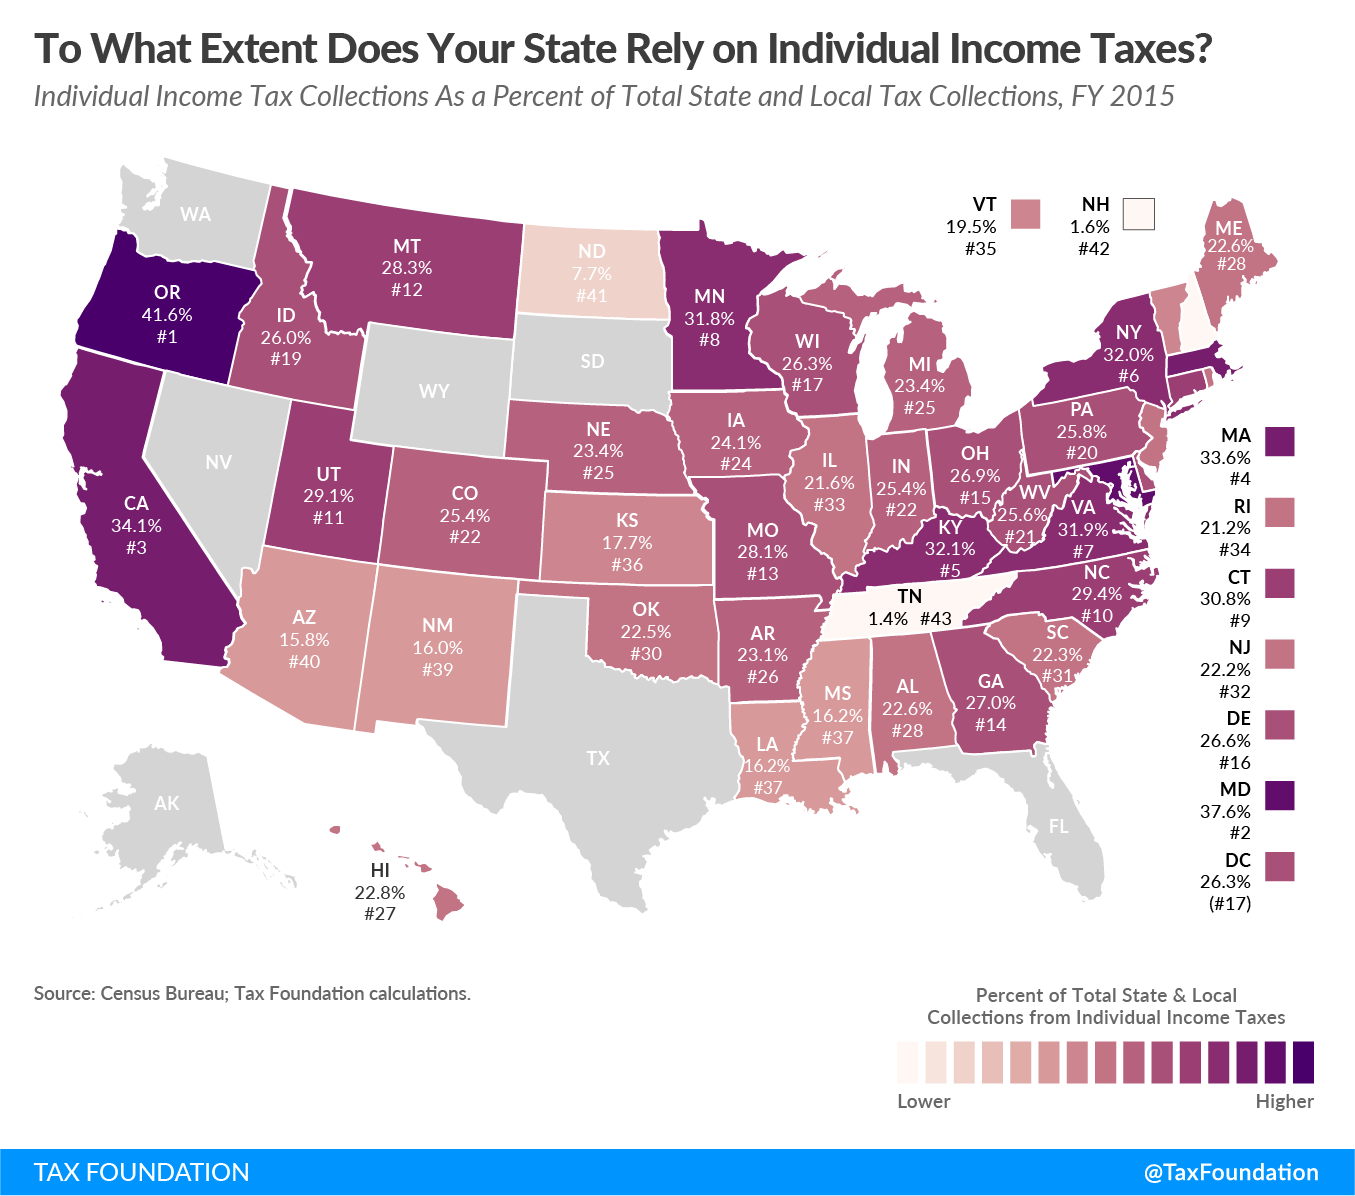 Personal Income Tax Reliance by State, State Rankings